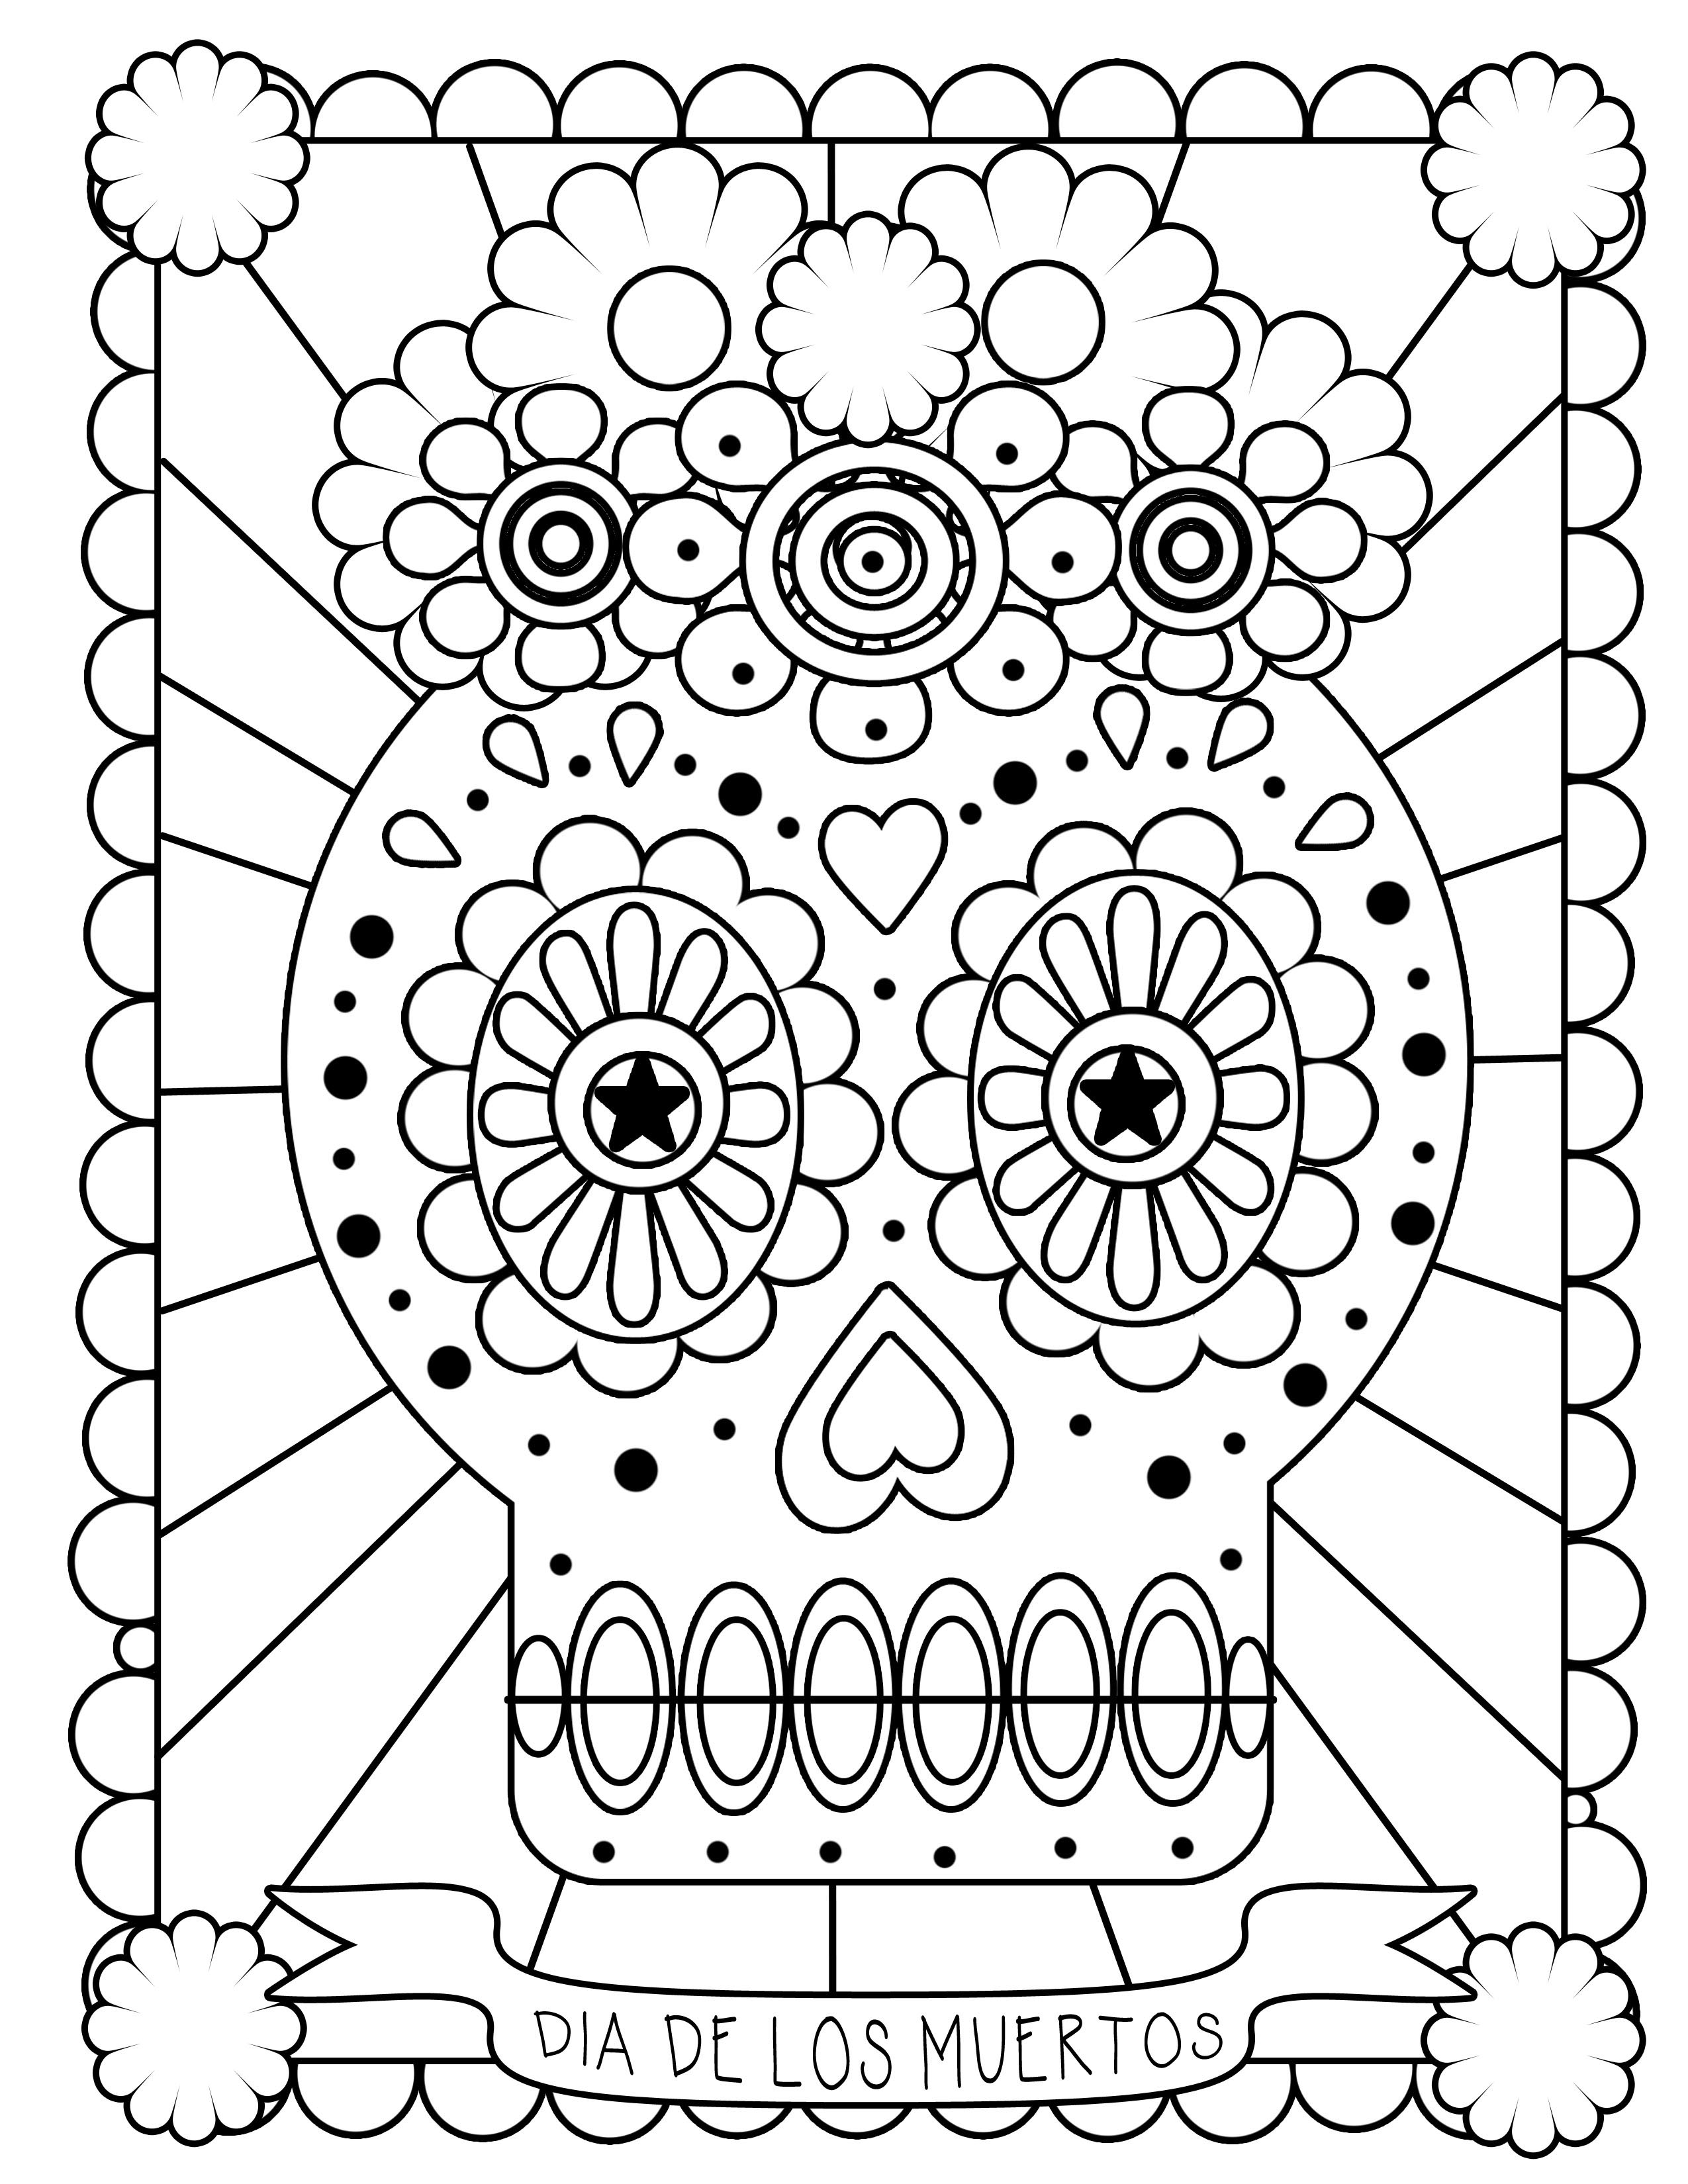 - Day-of-the-dead-coloring-pages-skulls Coloring Pages